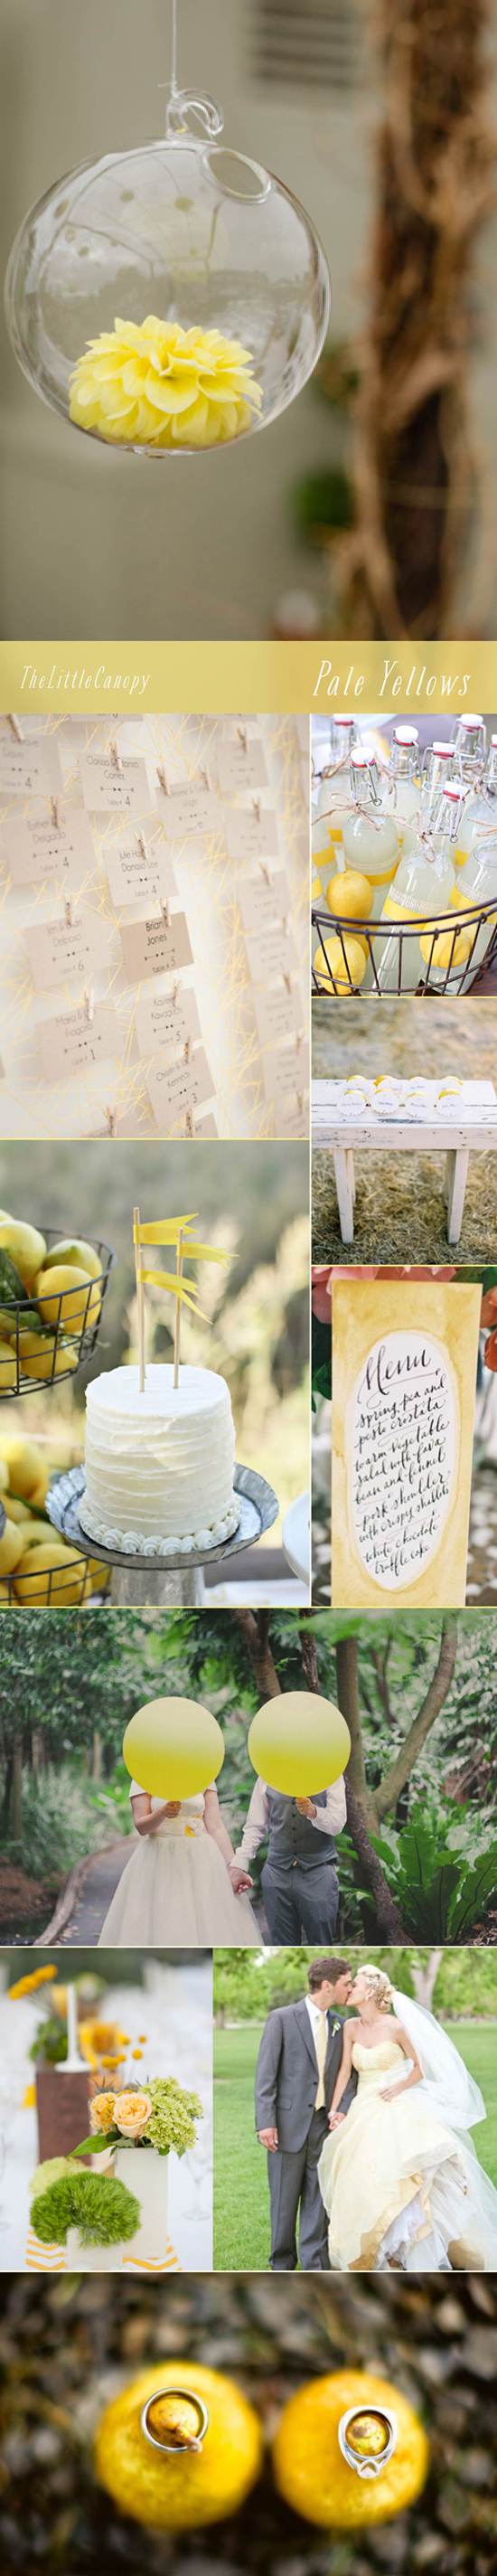 Ah, the beautiful pale yellow - we crave this happy color from time to time. So many ways to incorporate such a simple note into many different ways! Loving the usage of materials such as glass and thread to give life to the faint accents of yellow.